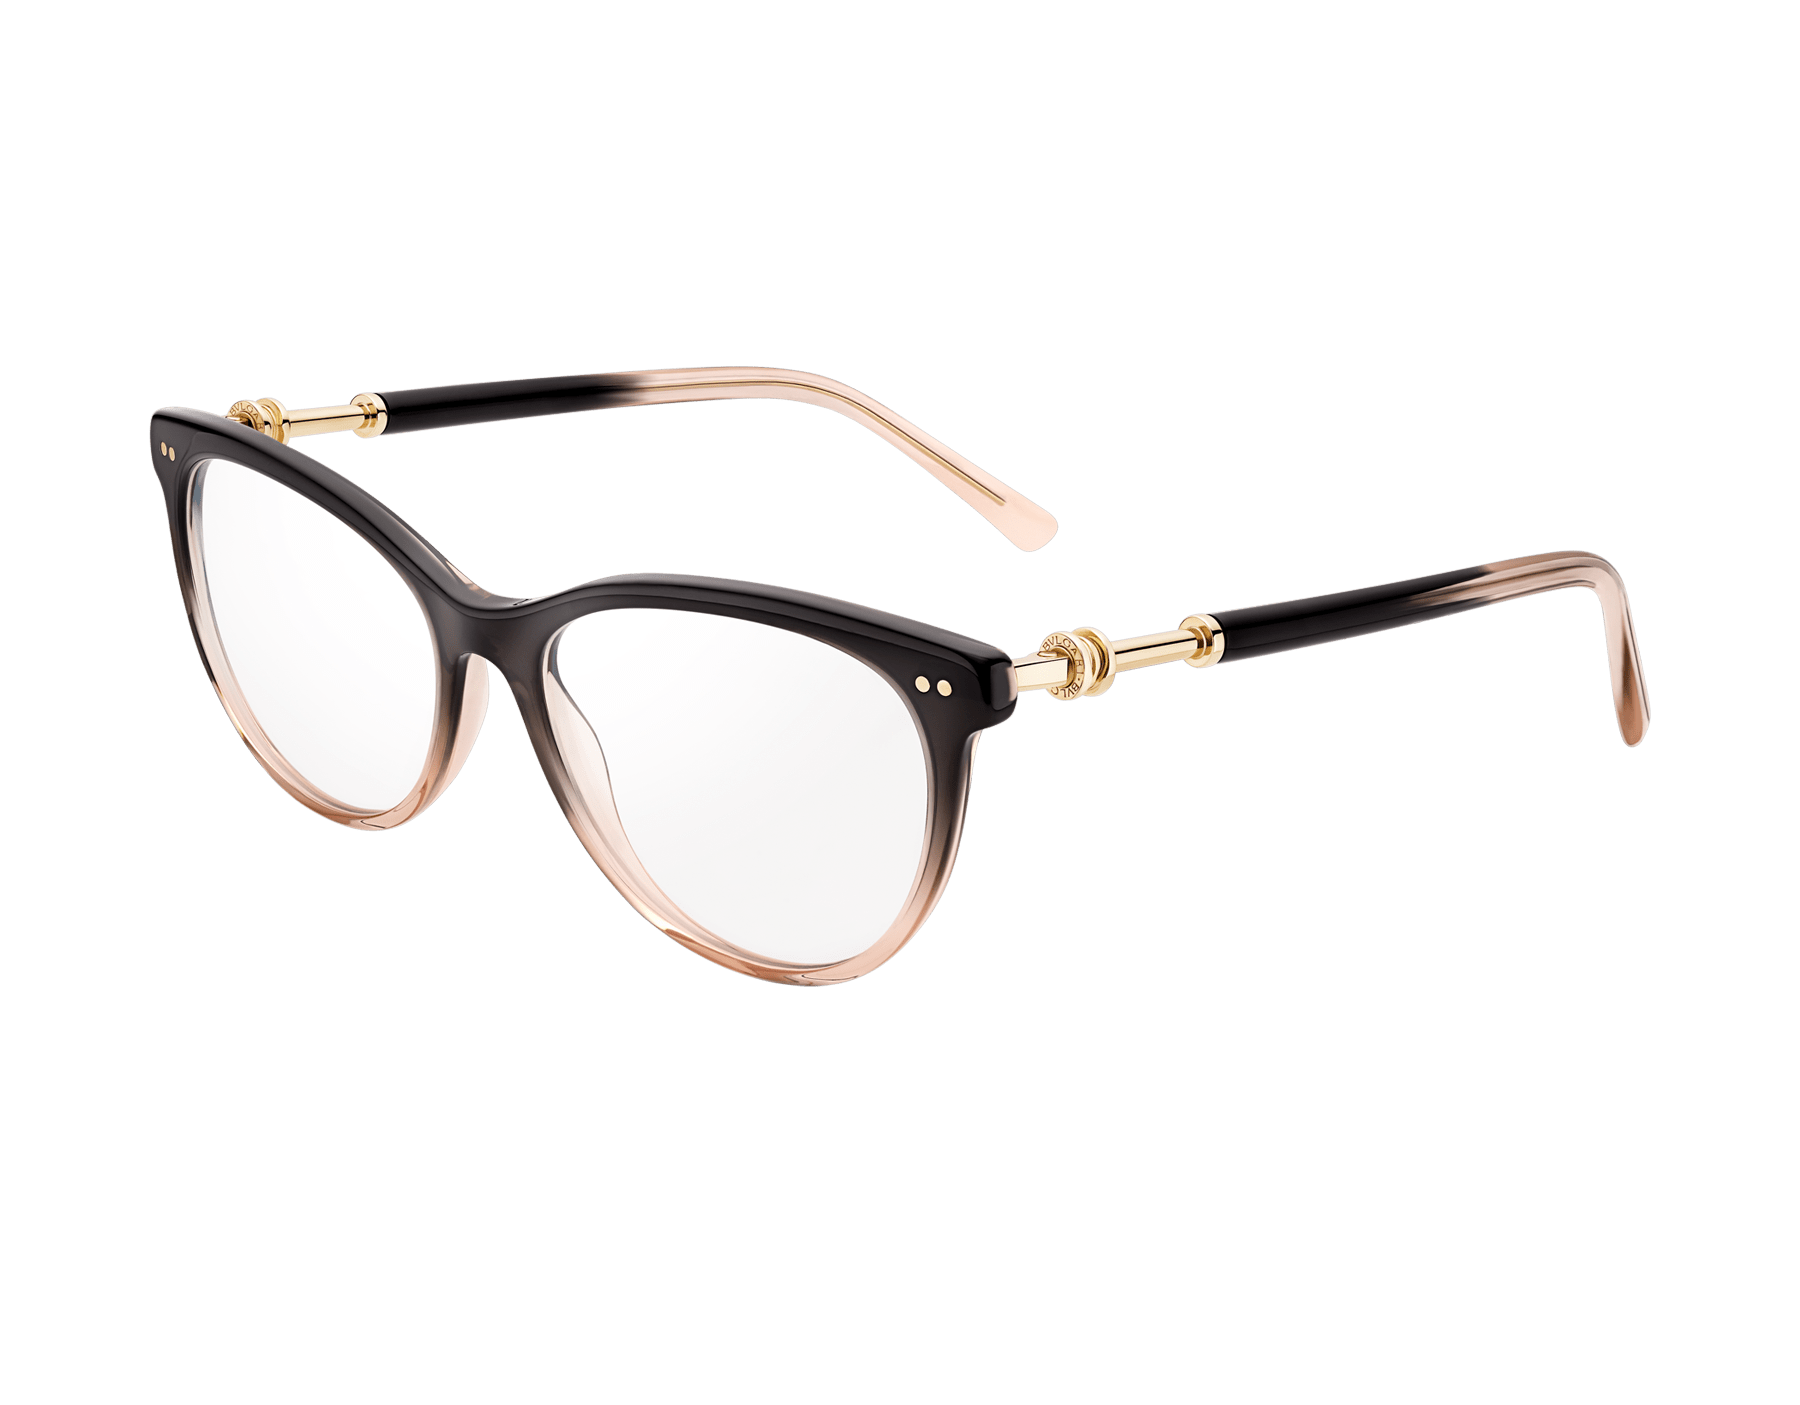 B.zero1 rounded cat-eye acetate optical glasses with metal décor 903809 image 1